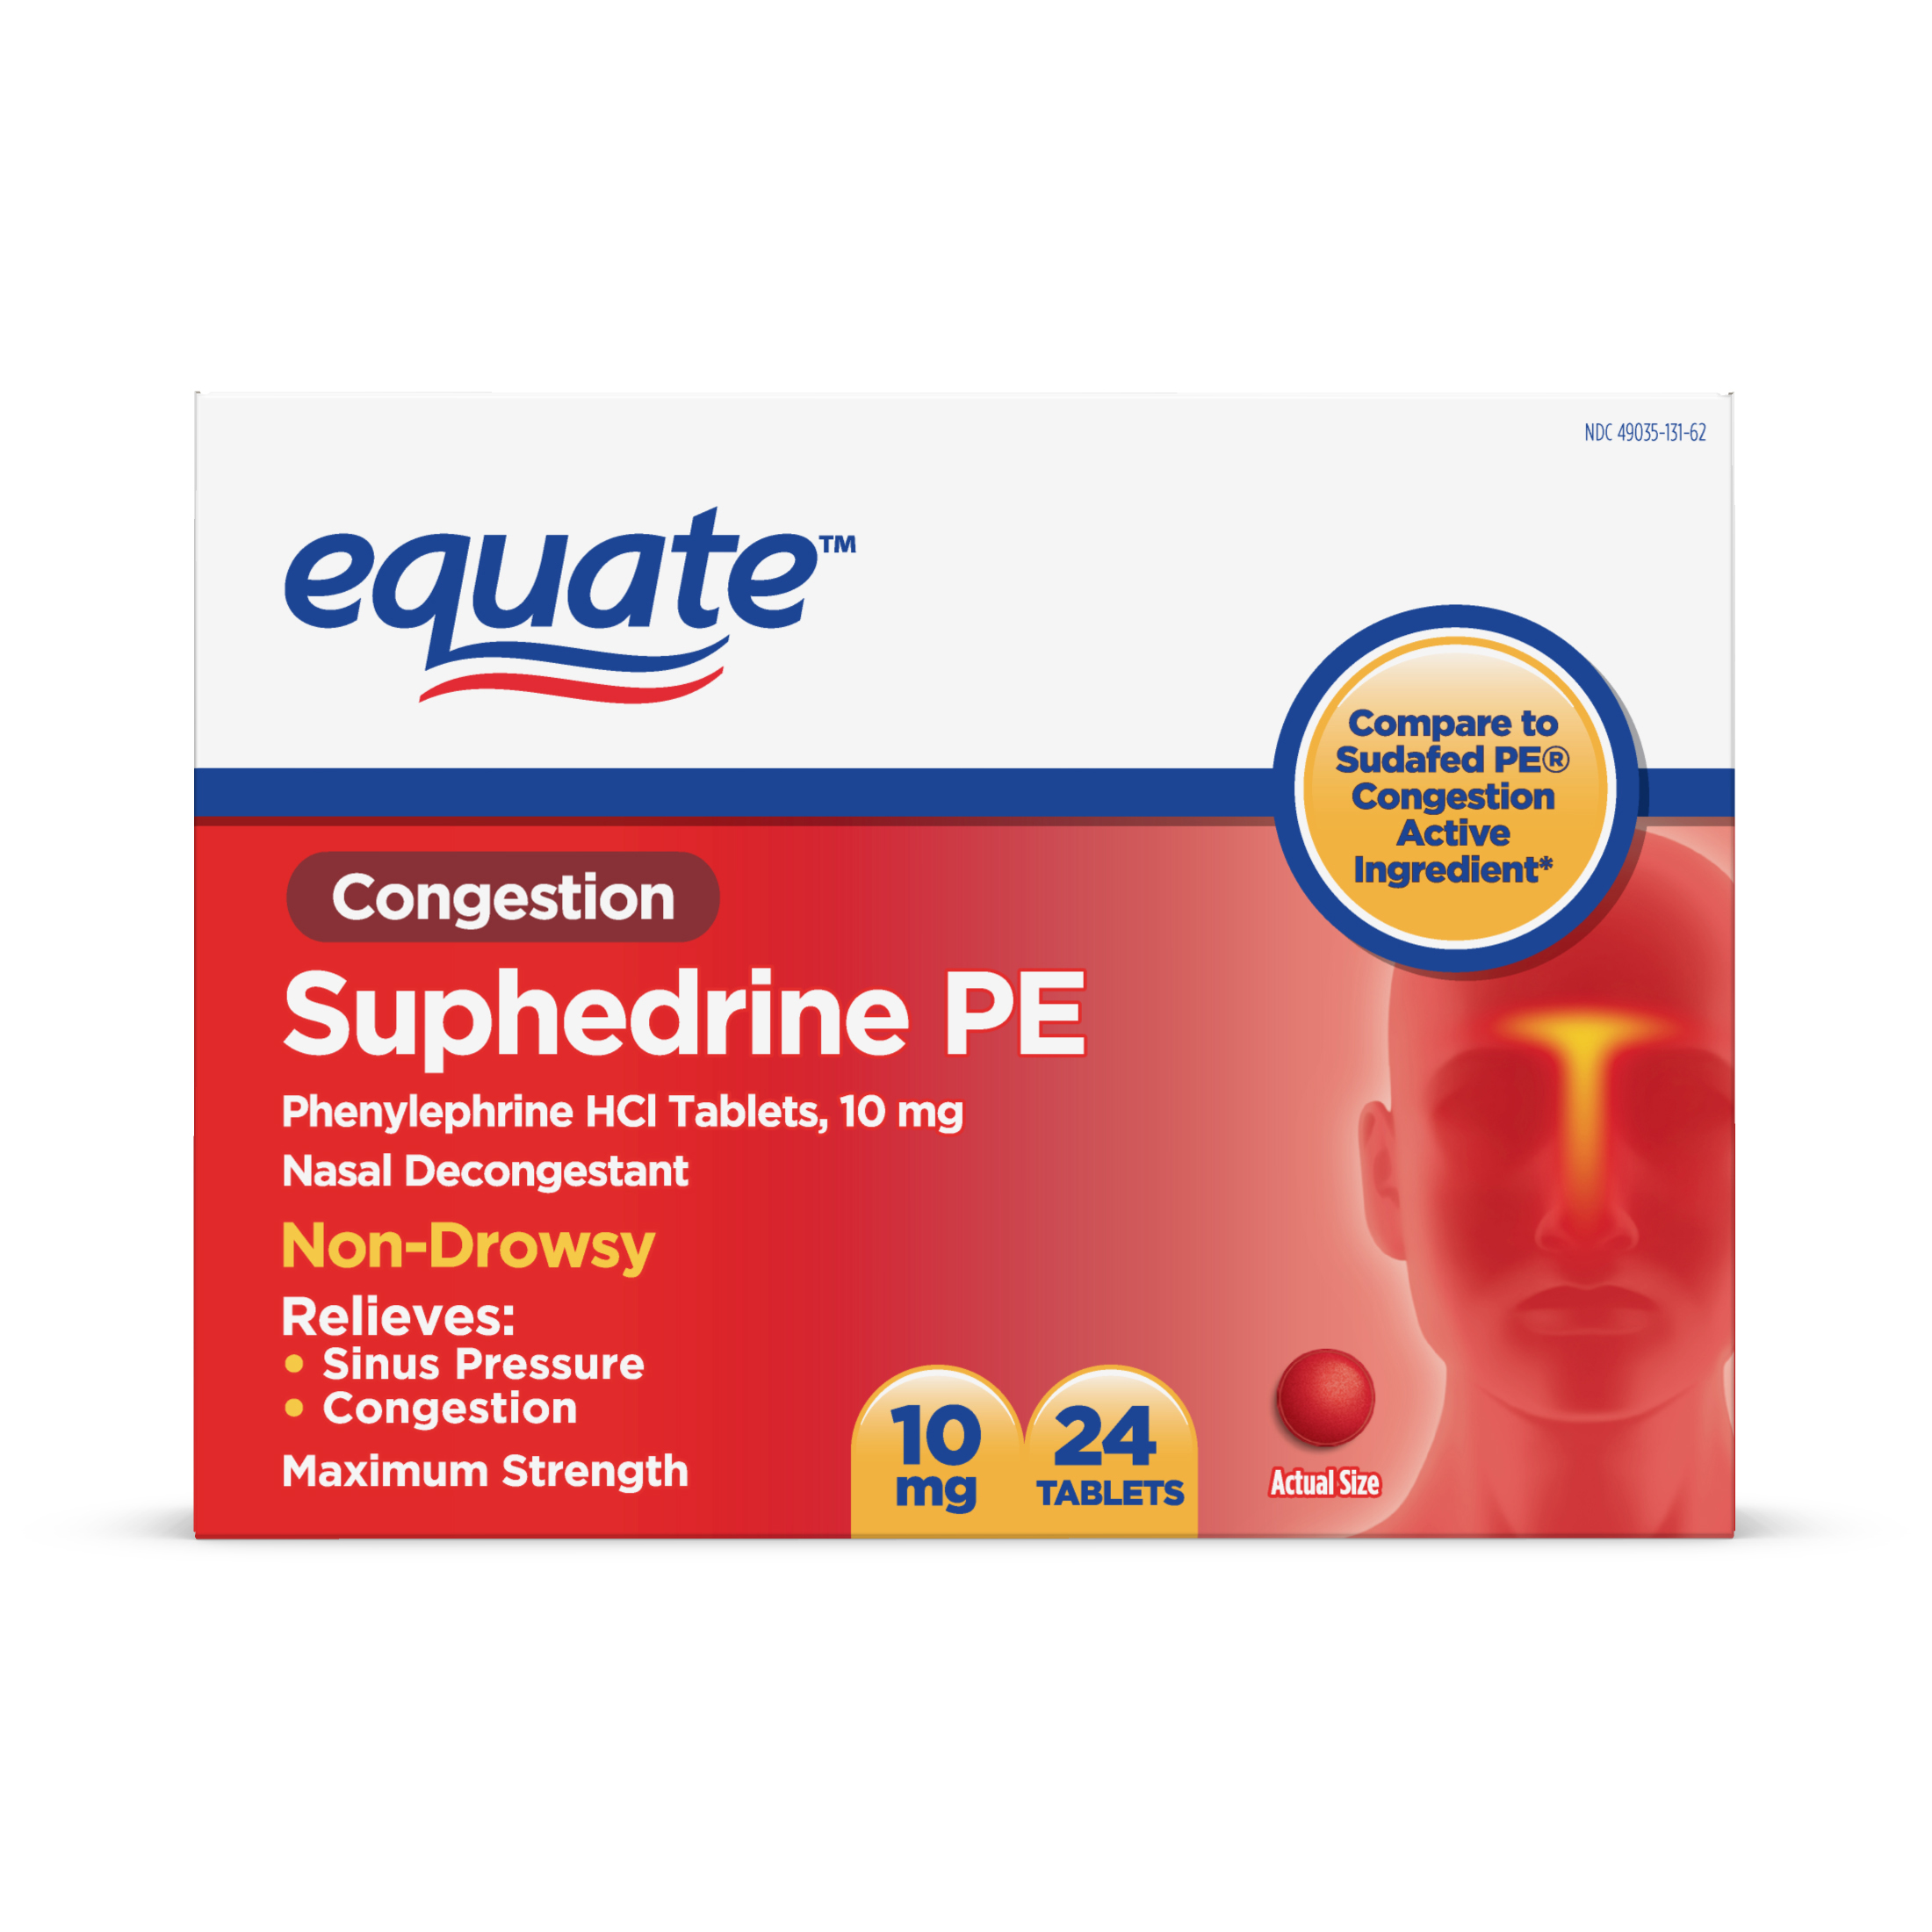 Equate Congestion Suphedrine PE Tablets, 10 mg, 24 Ct